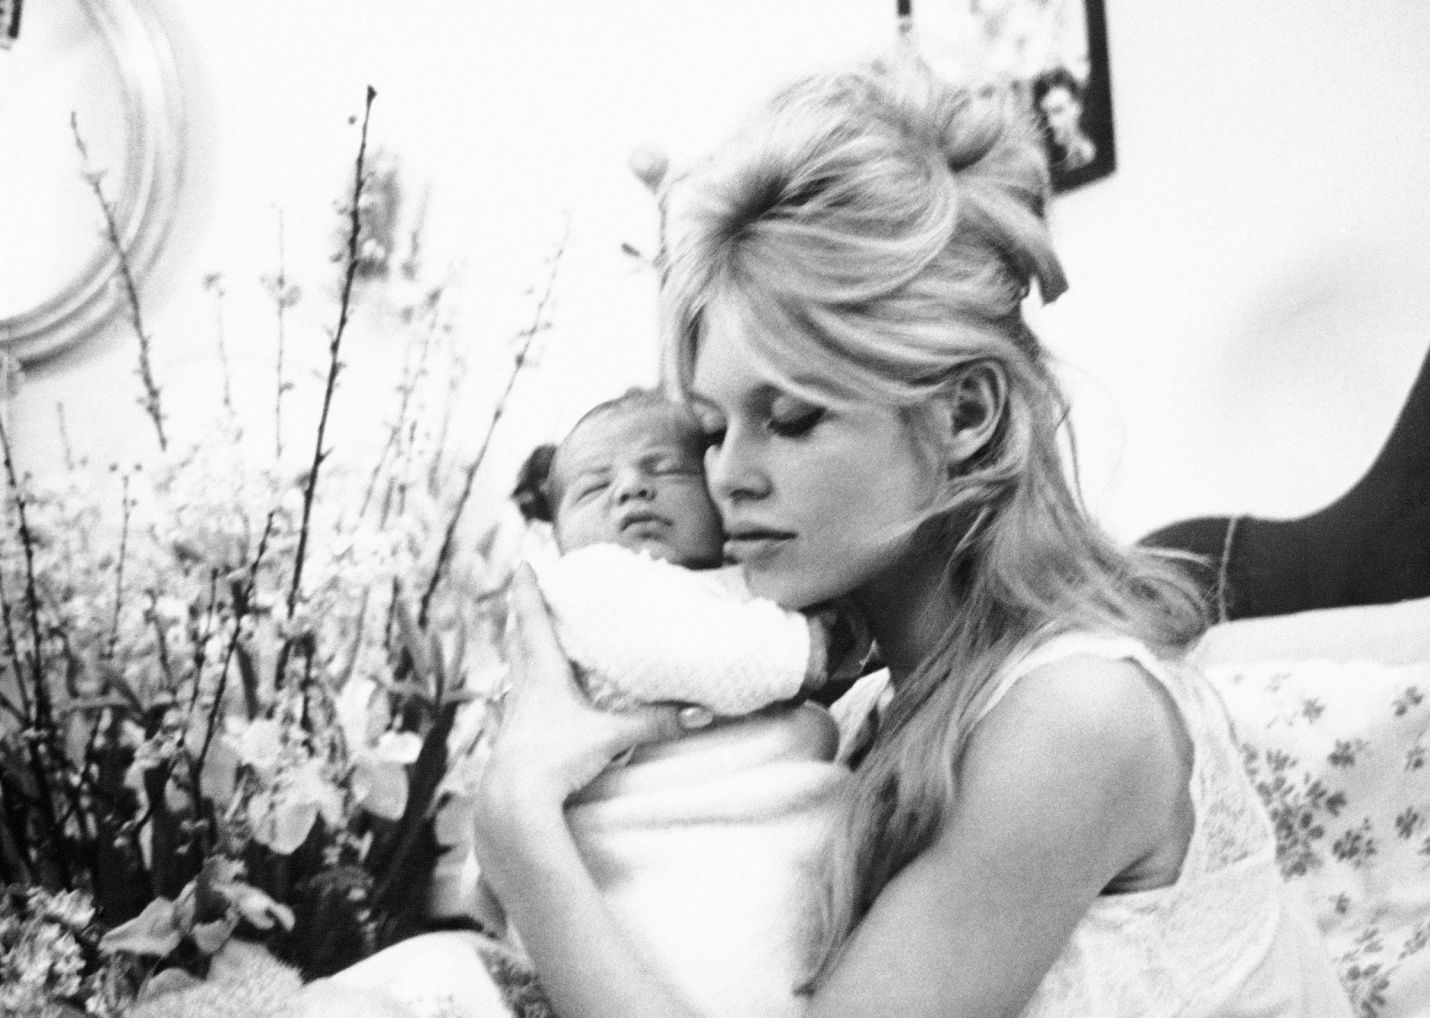 On 11 January 1960 Brigitte gave birth to her only child, Nicolas. Here she is cuddling him in her Paris apartment.